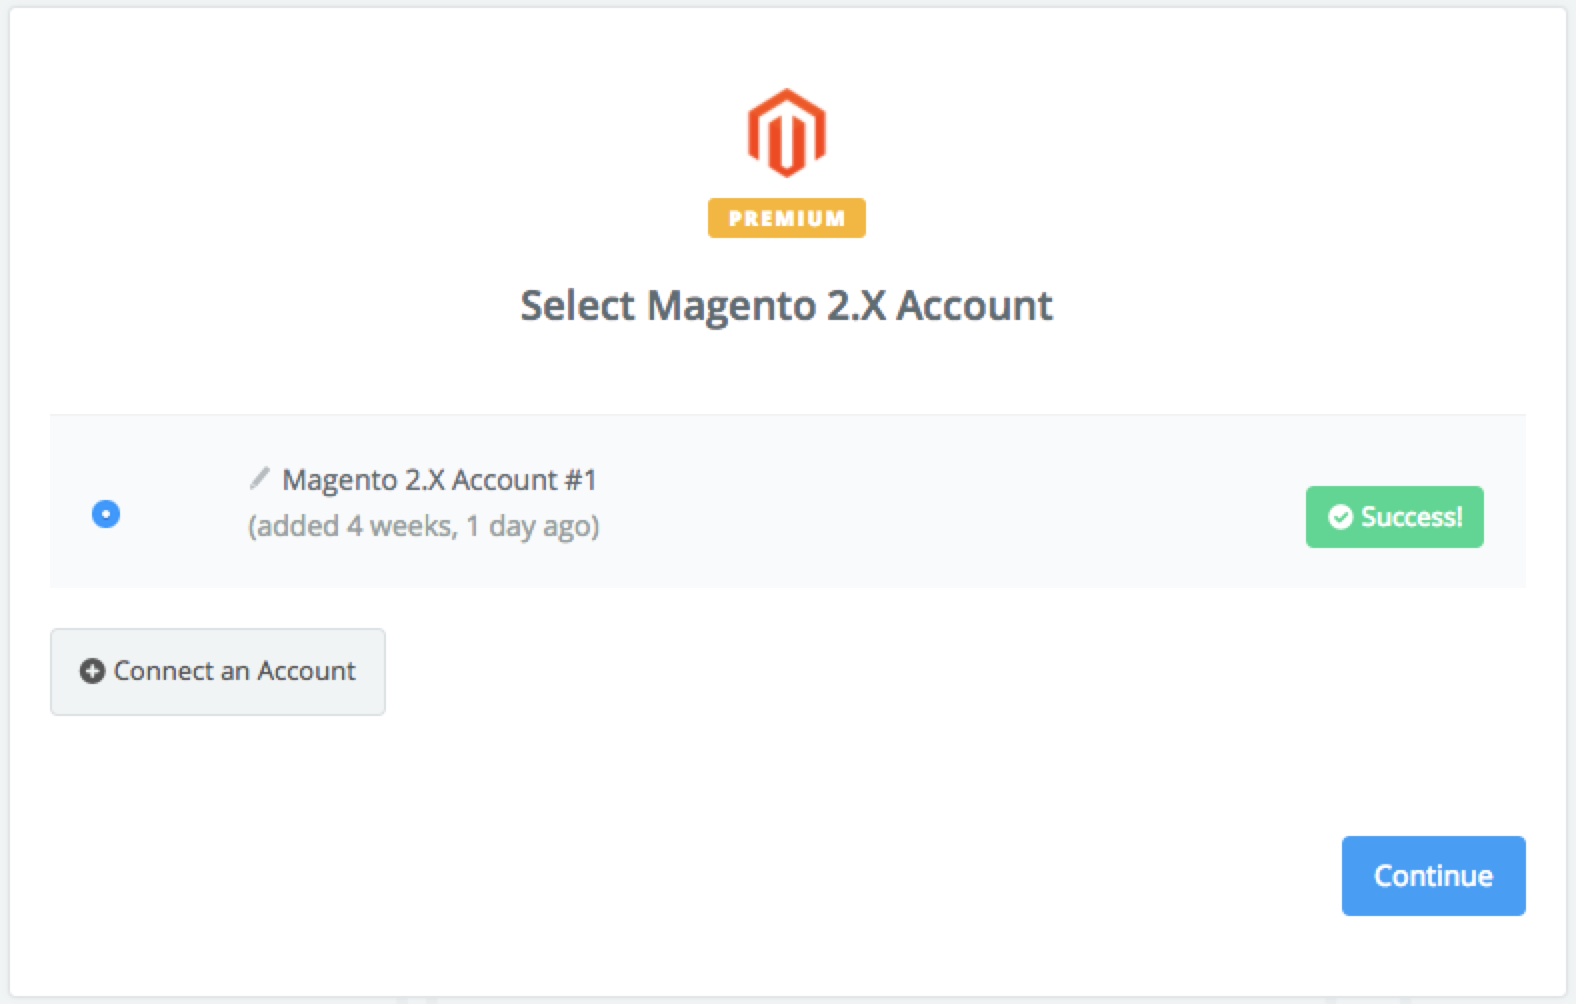 Magento 2.X connection successfull